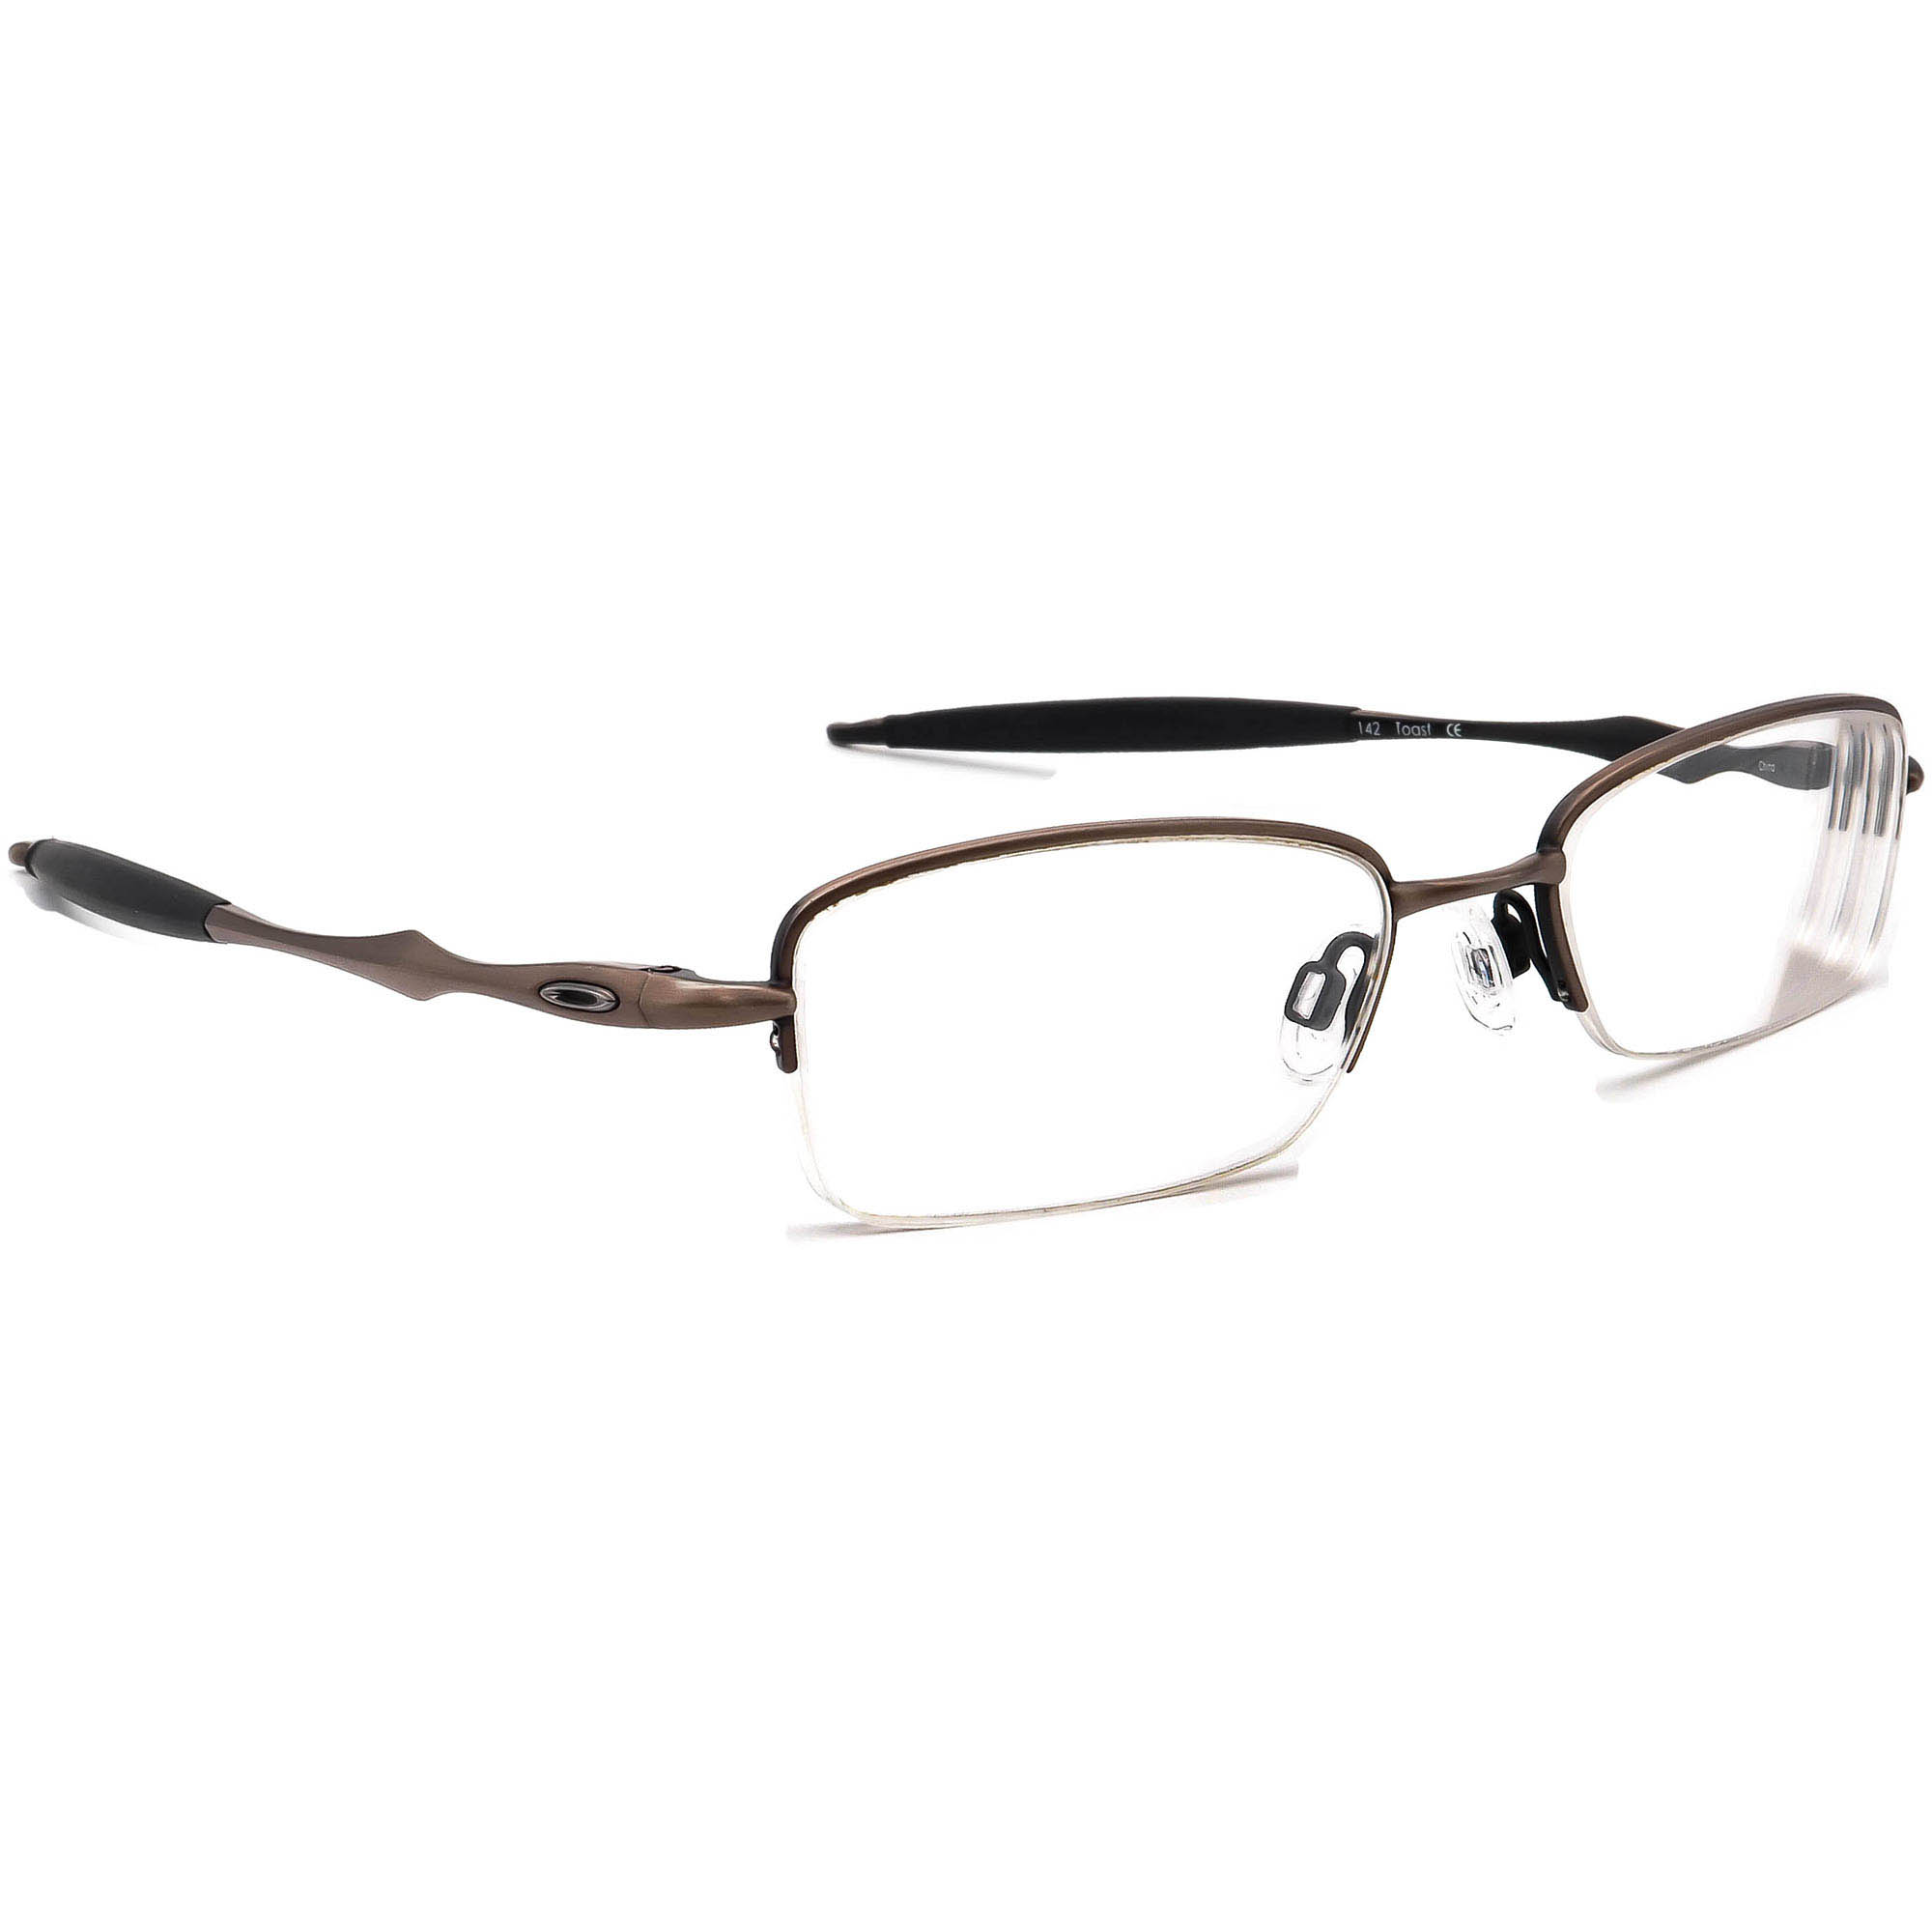 Oakley Sculpt 2.0 Eyeglasses